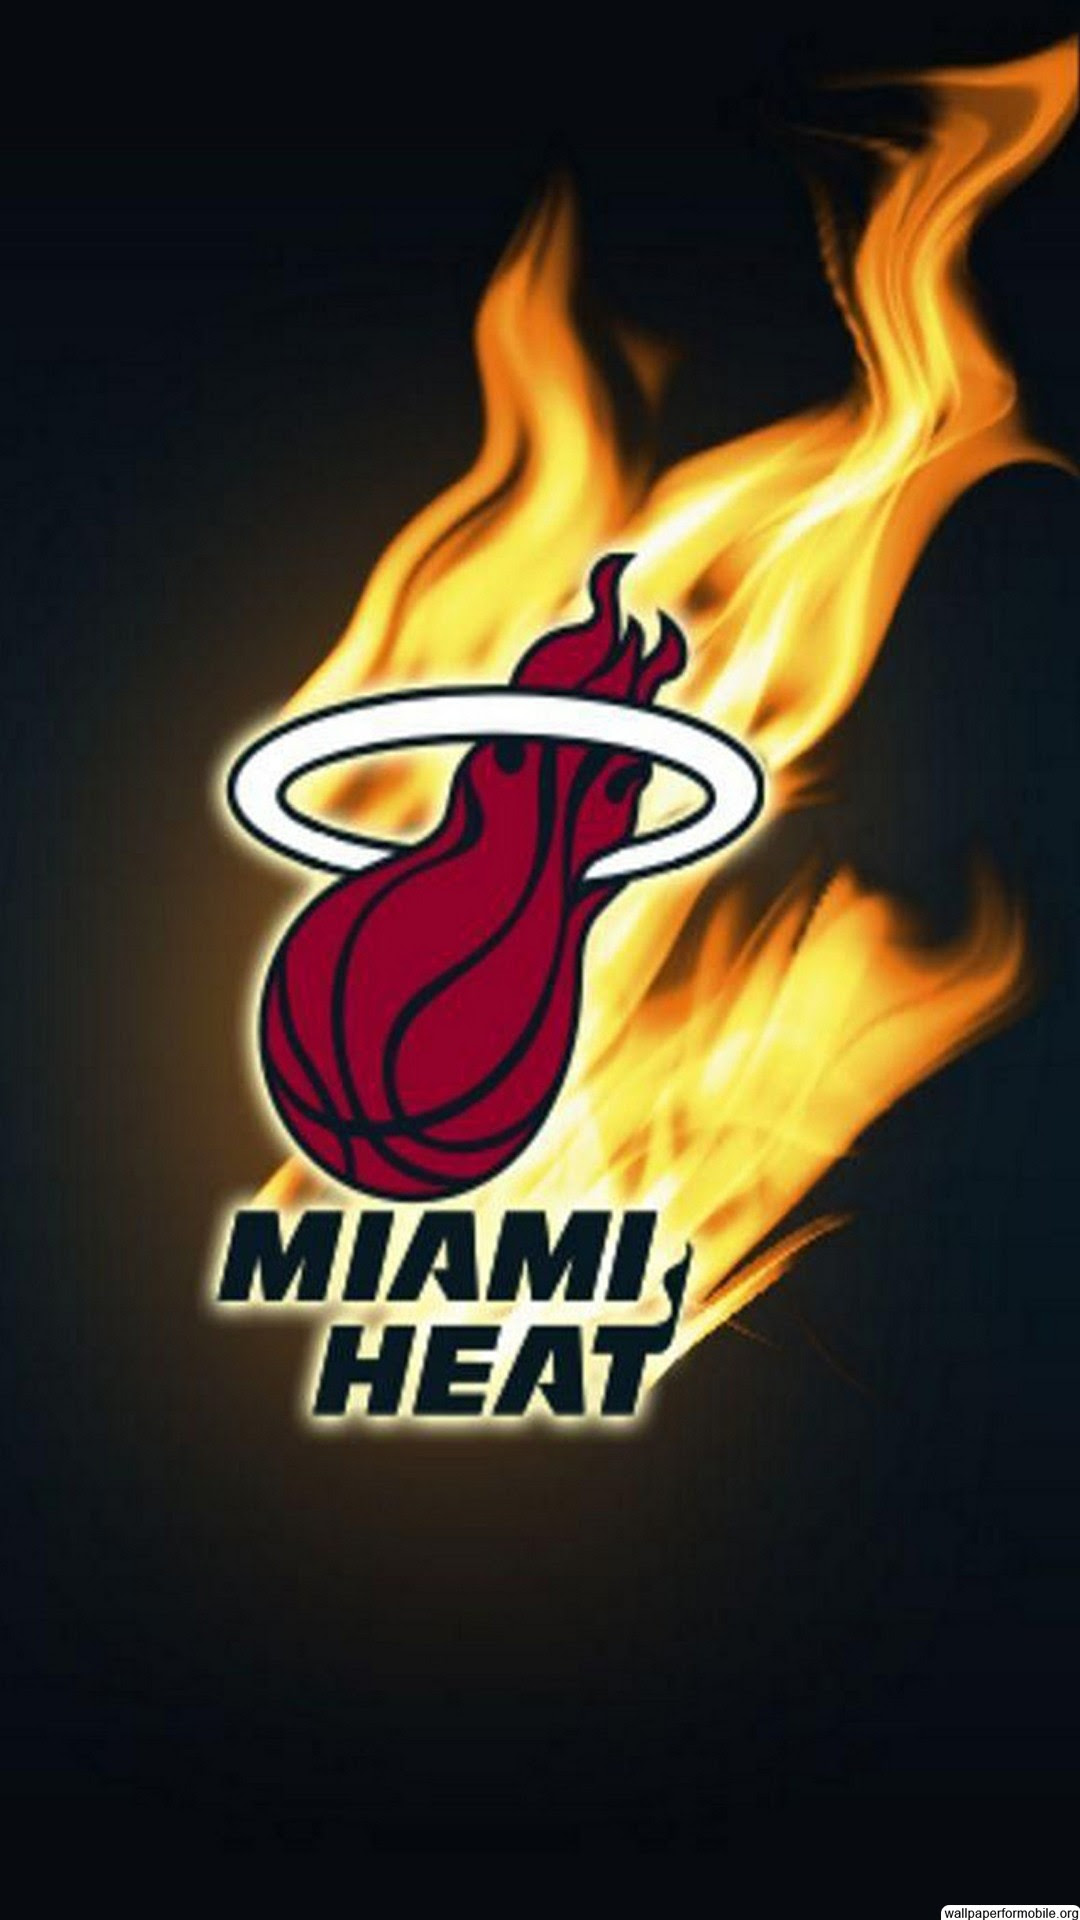 Miami Heat Logo Wallpaper 68 Images